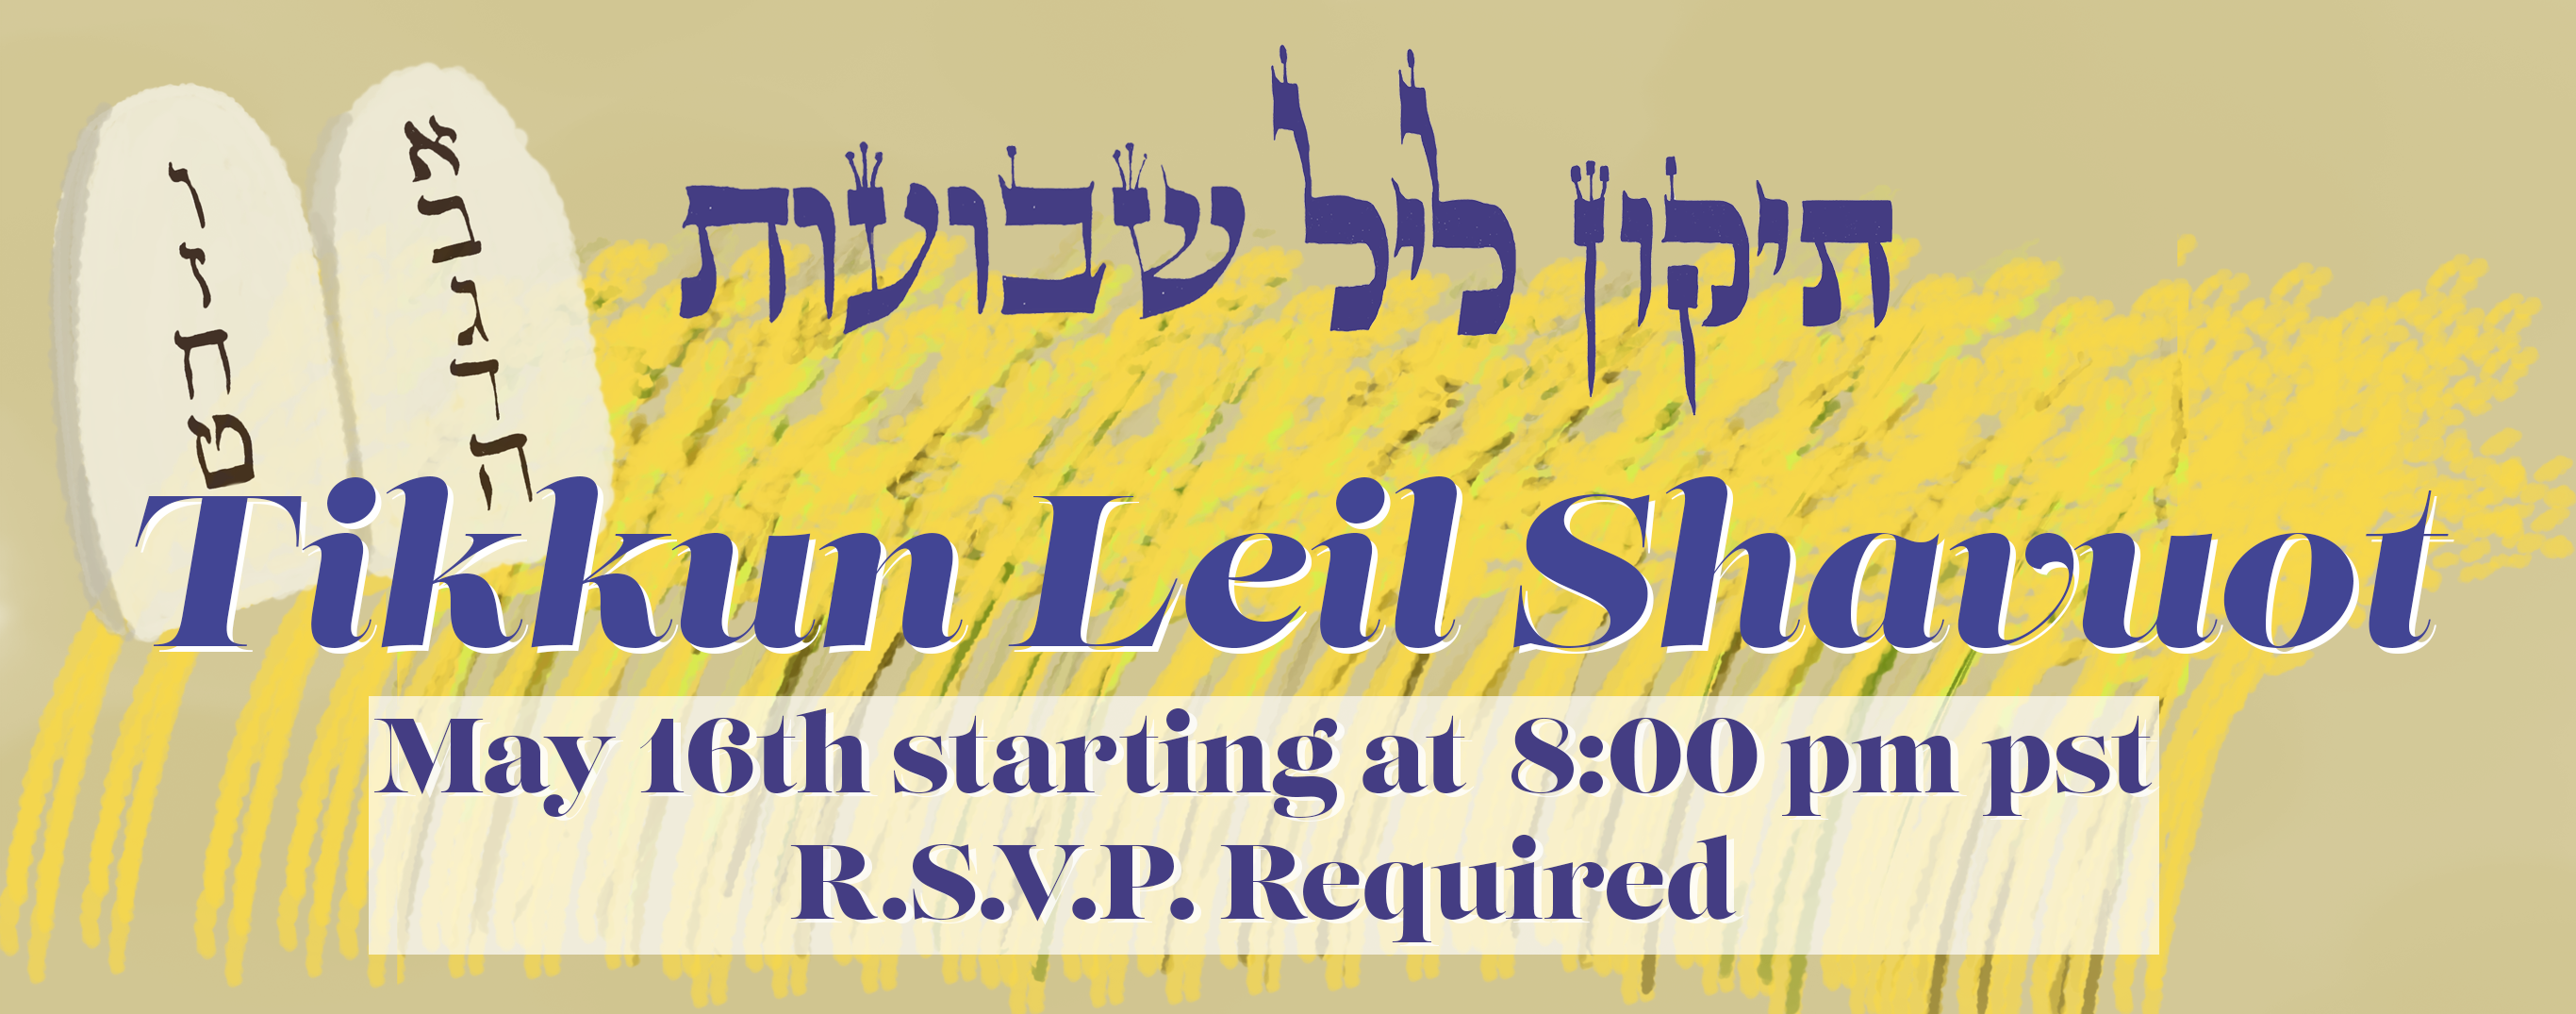 Tikkun Leil Shavuot 2021 Sessions starting at 8:00 pm. R.S.V.P. required